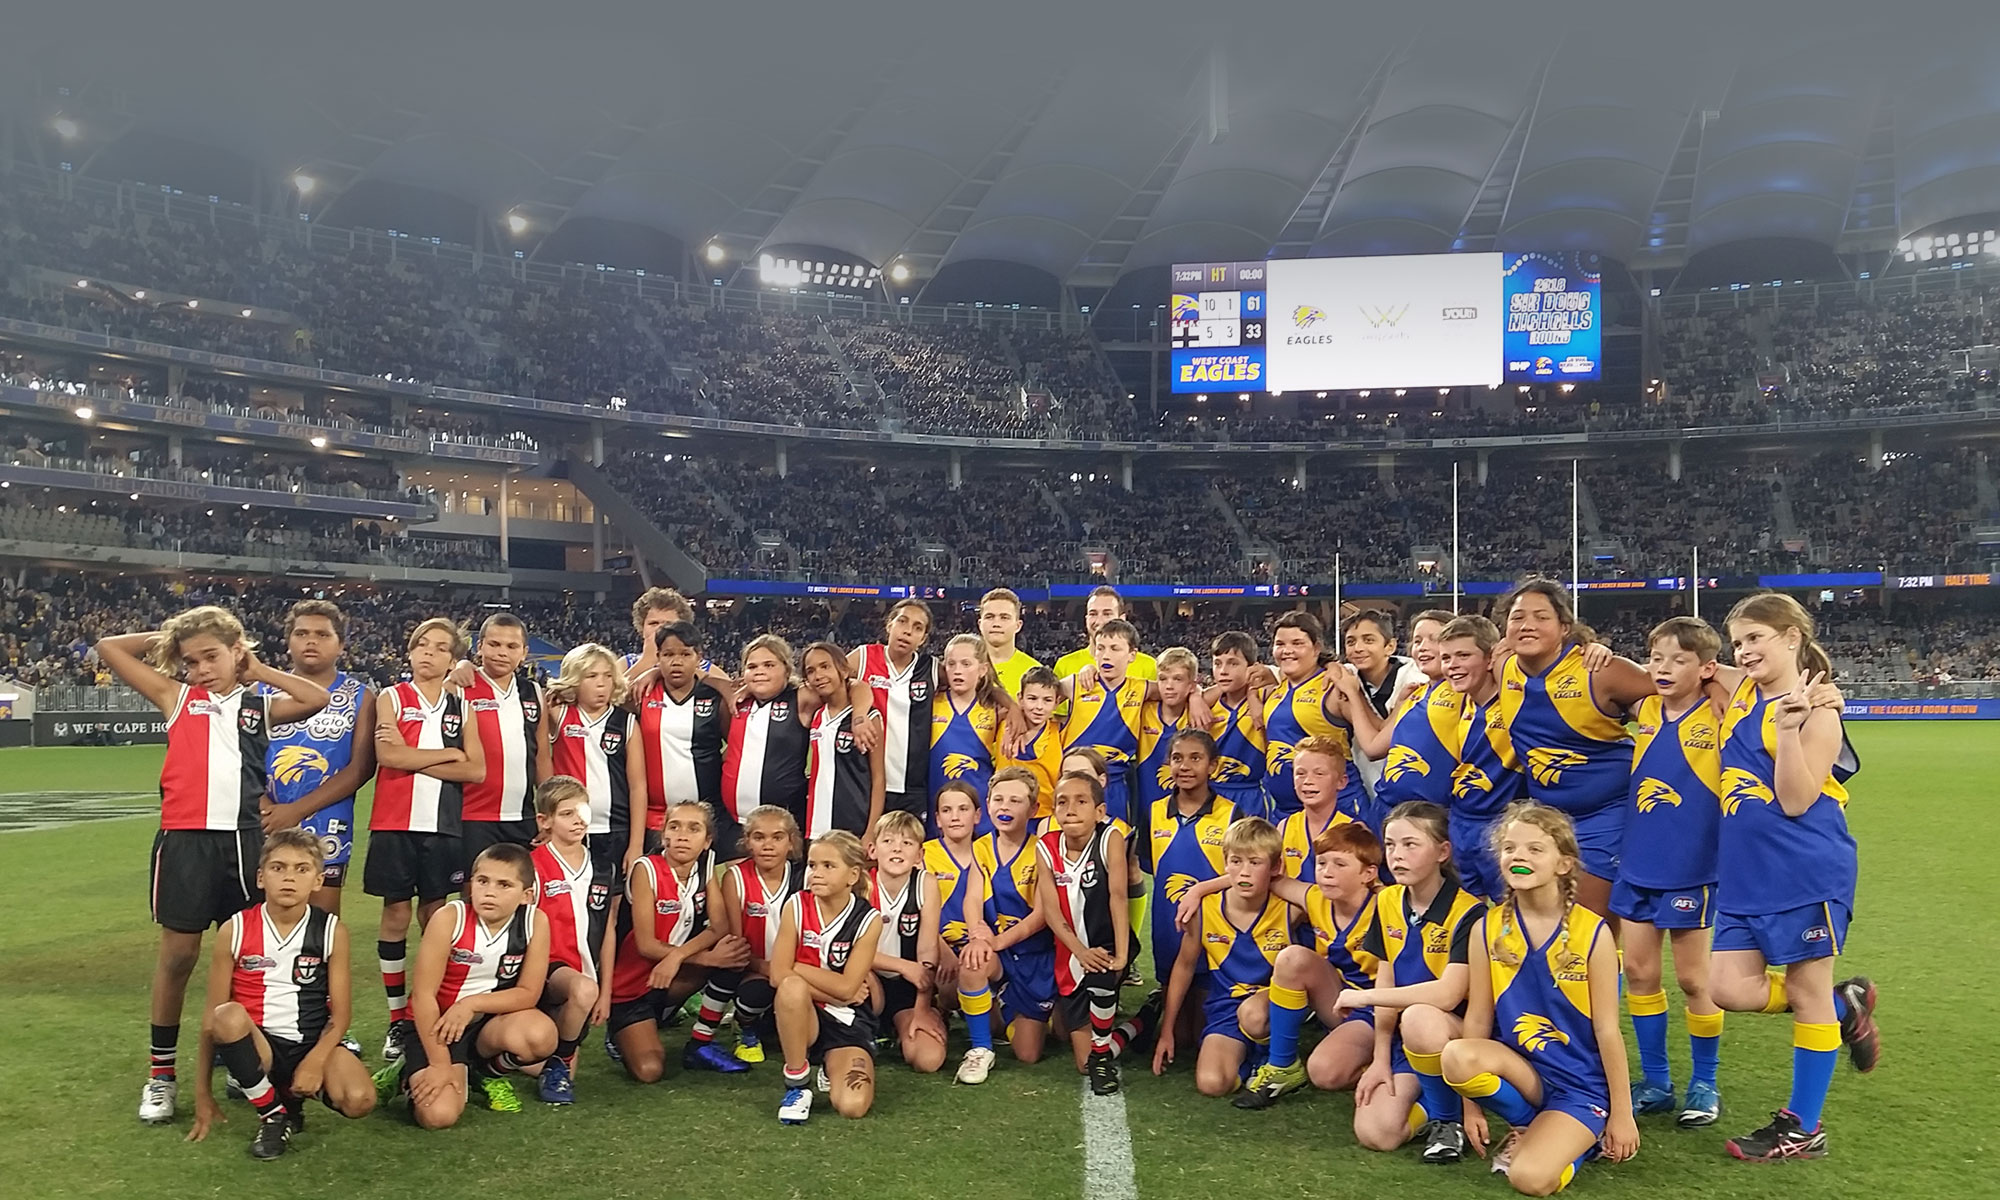 Stephen Michael Foundation - half time game at Optus Stadium Perth